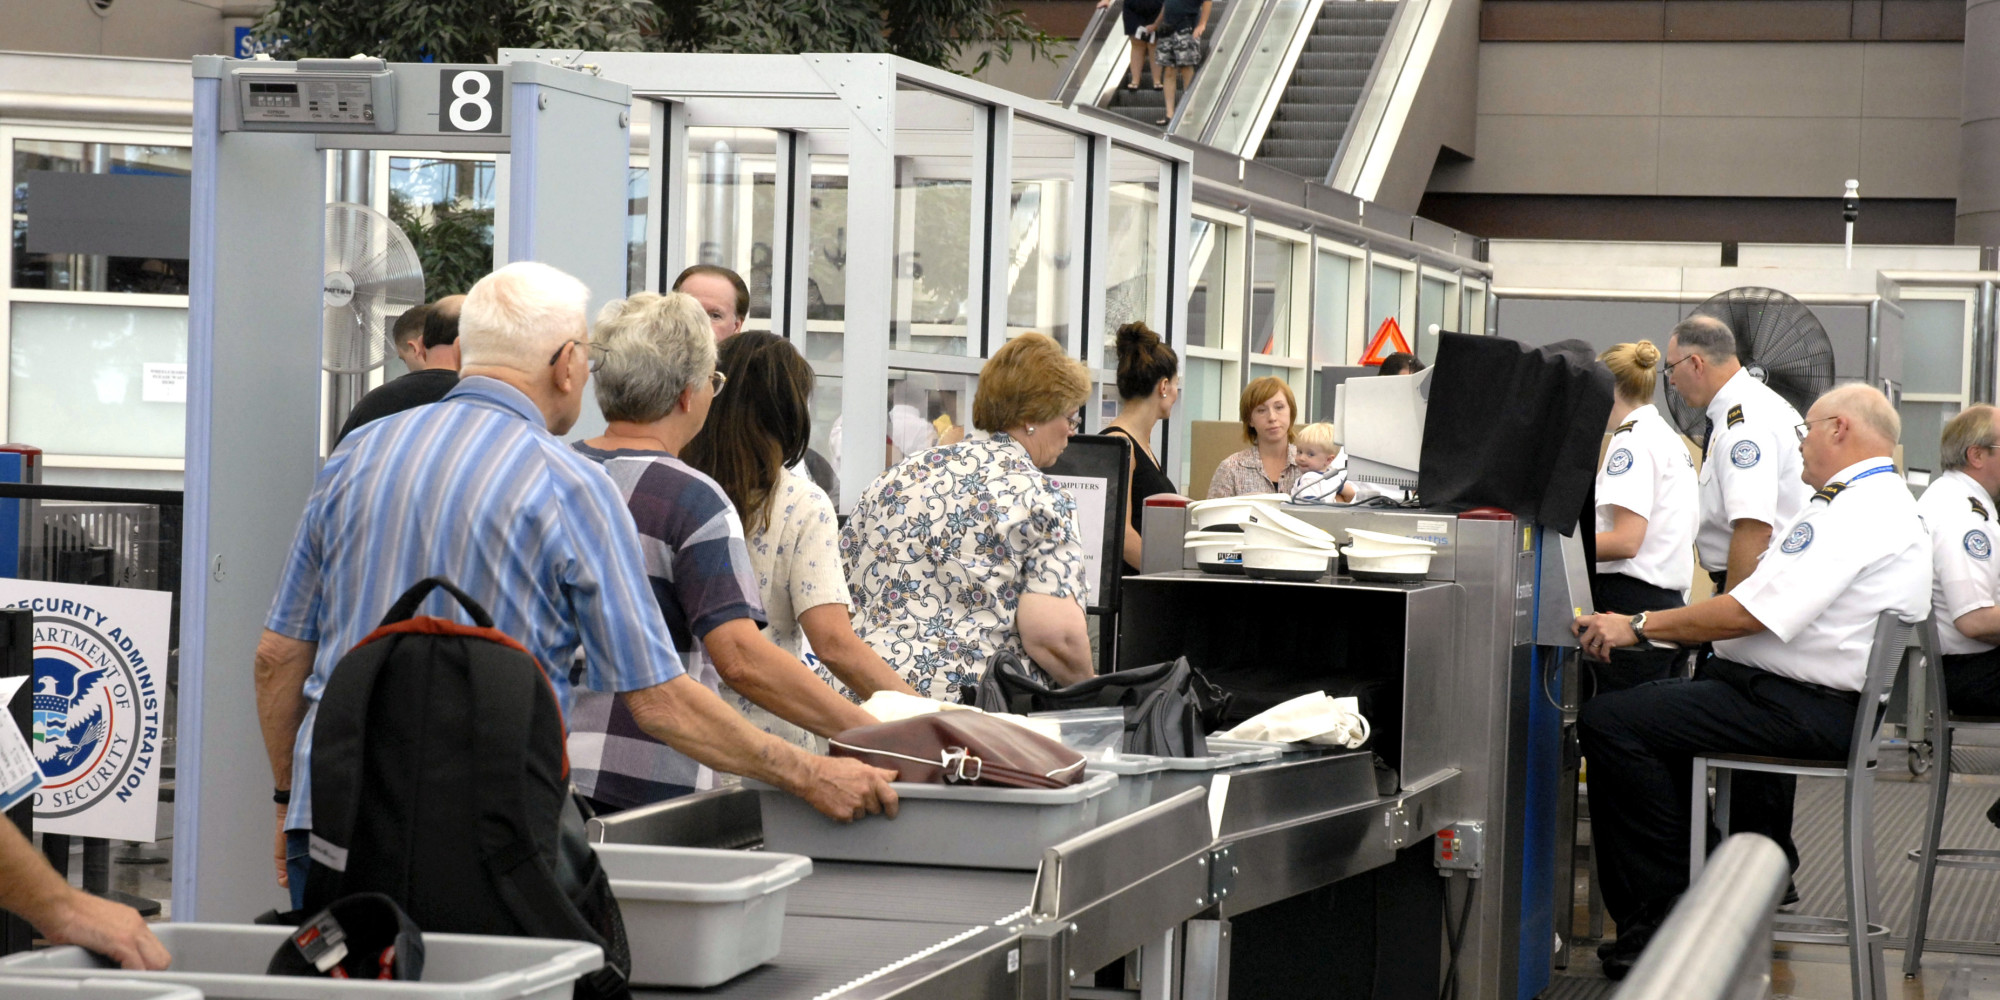 How to Get Through Airport Security with Kids advise